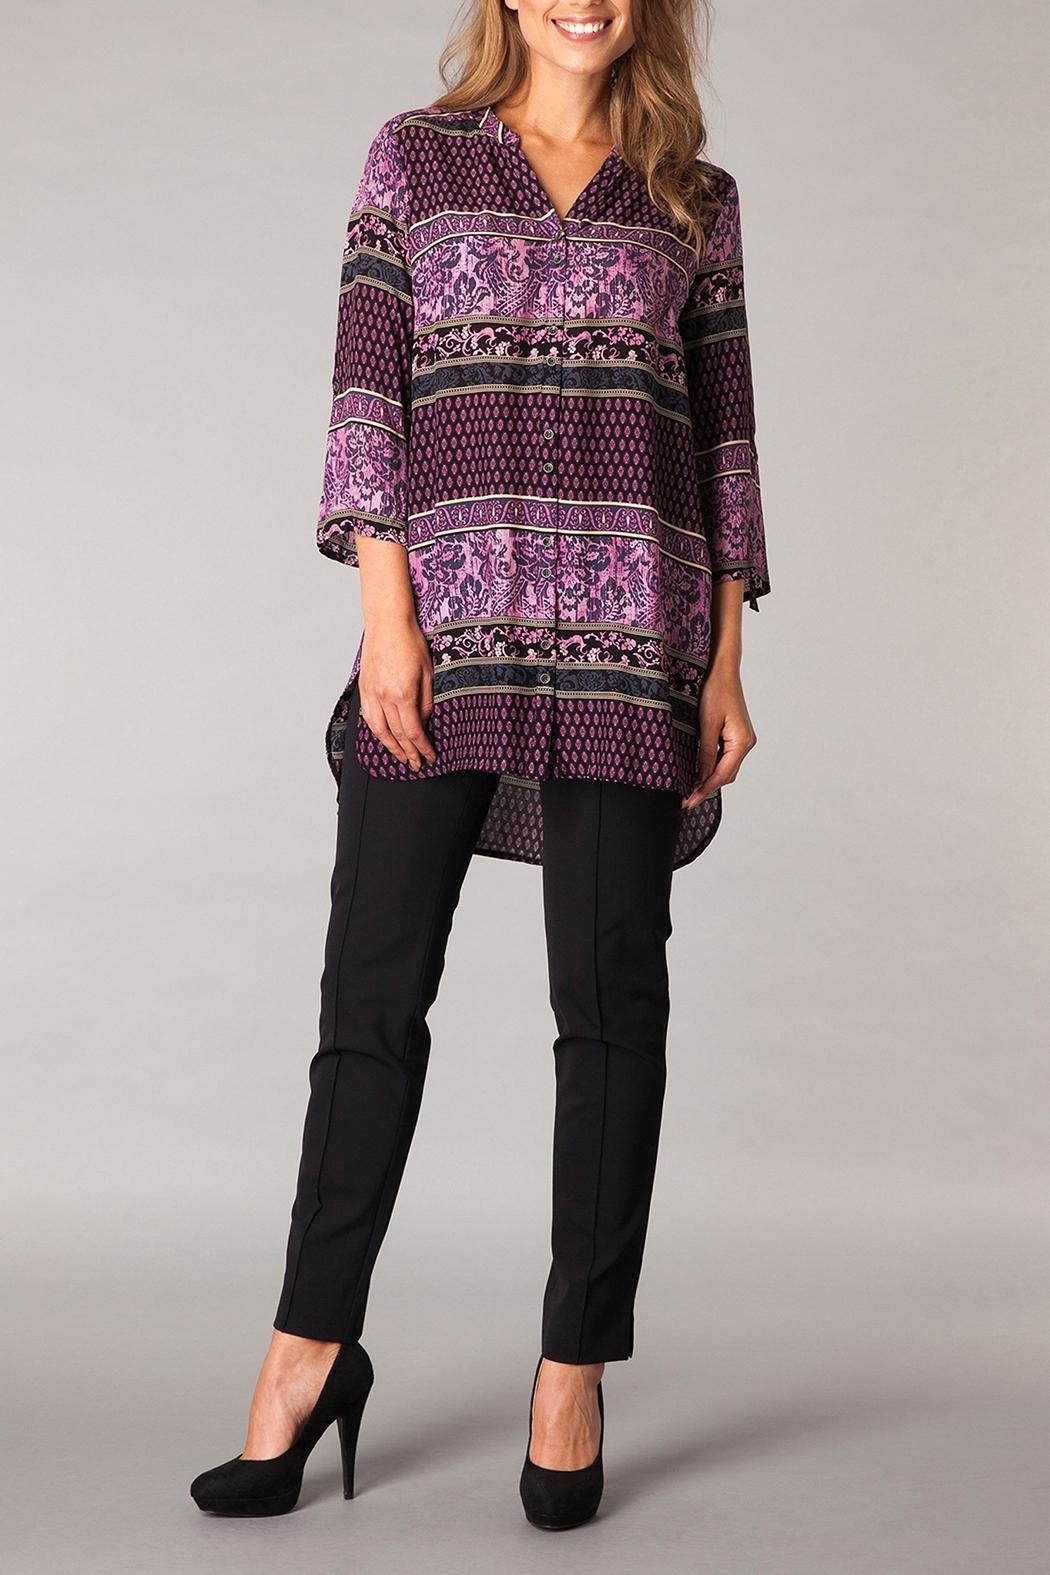 Yest Patterned Purple Tunic Top - Main Image